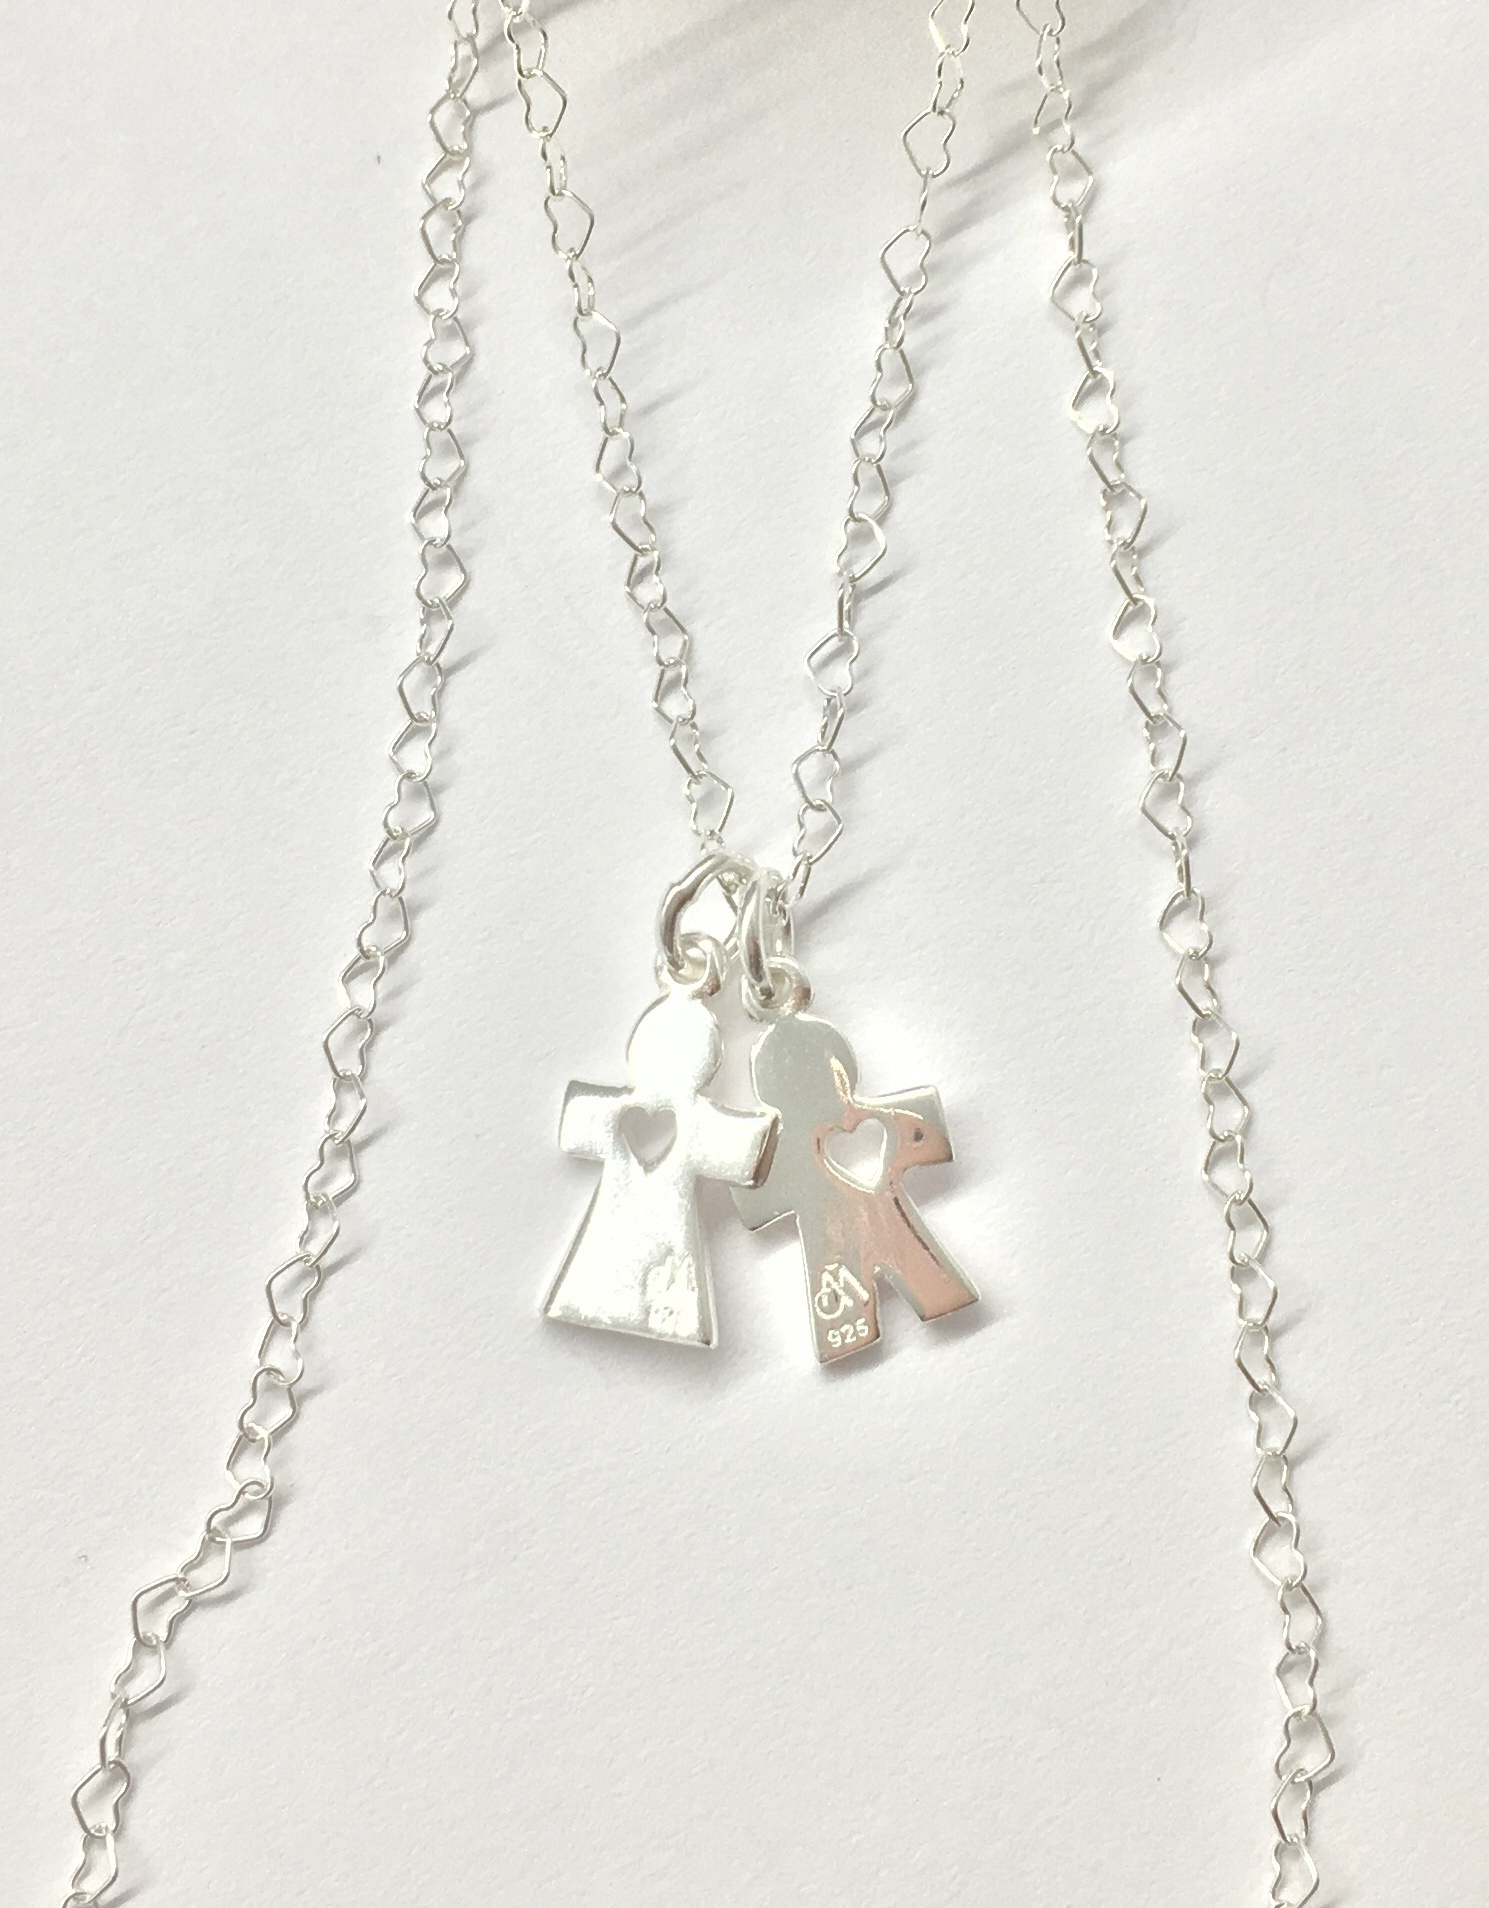 Annabella Moore - Male and Female charm necklace